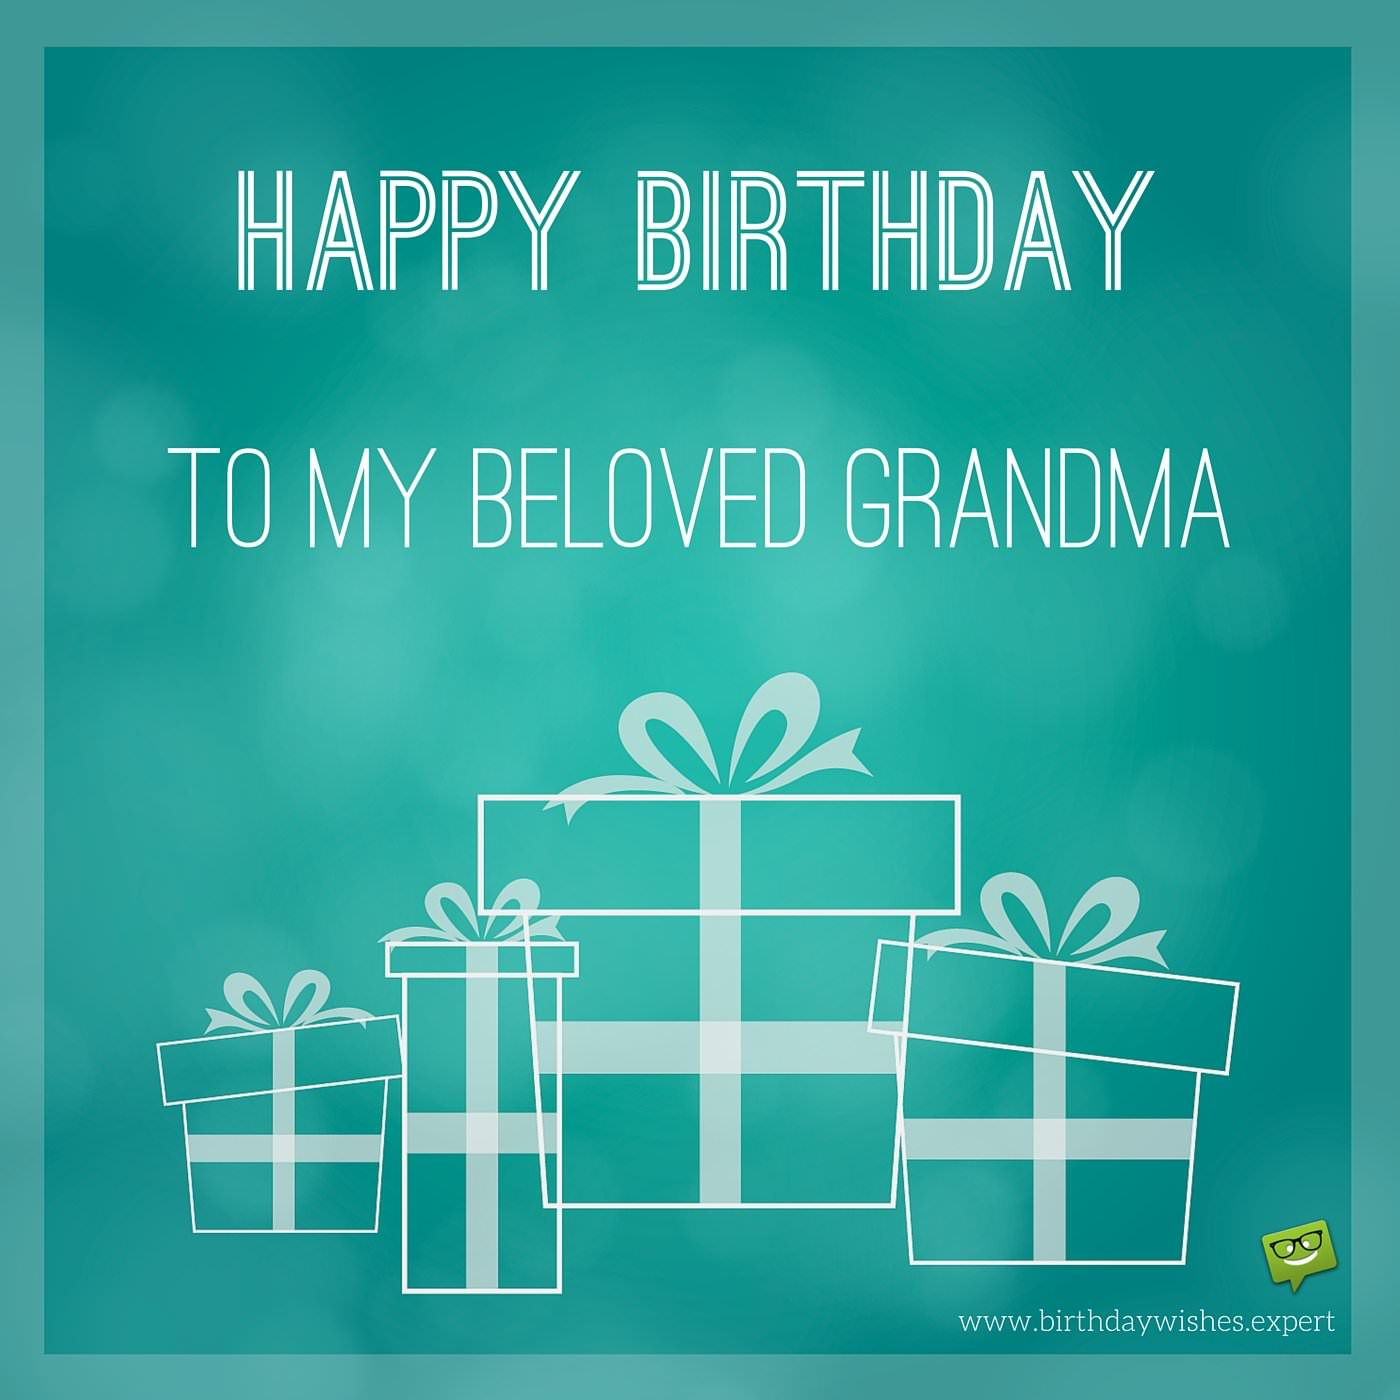 Birthday Image For Grandma With Gifts On A Turquoise Background